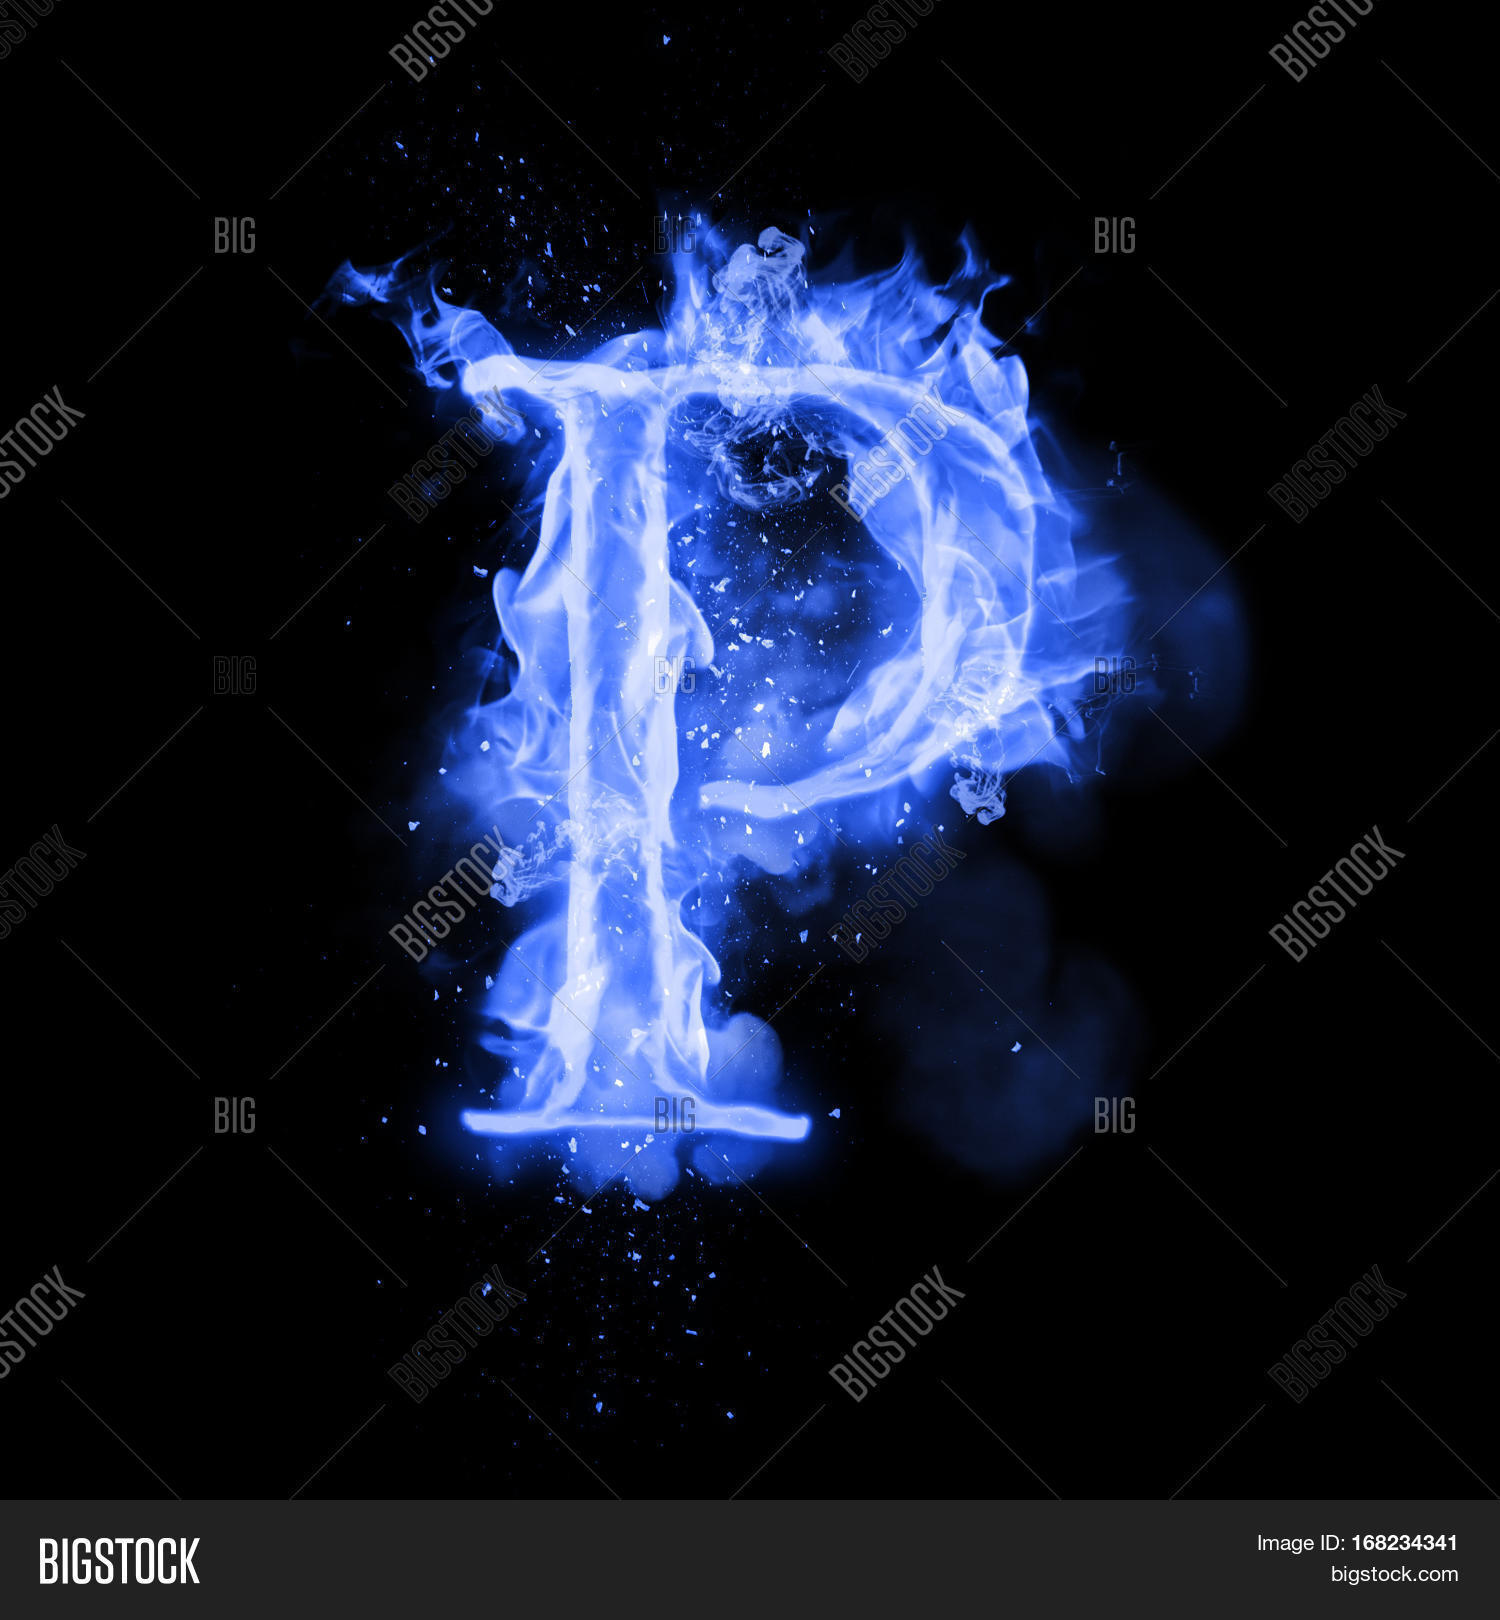 P Letter Images.Fire Letter P Burning Image Photo Free Trial Bigstock